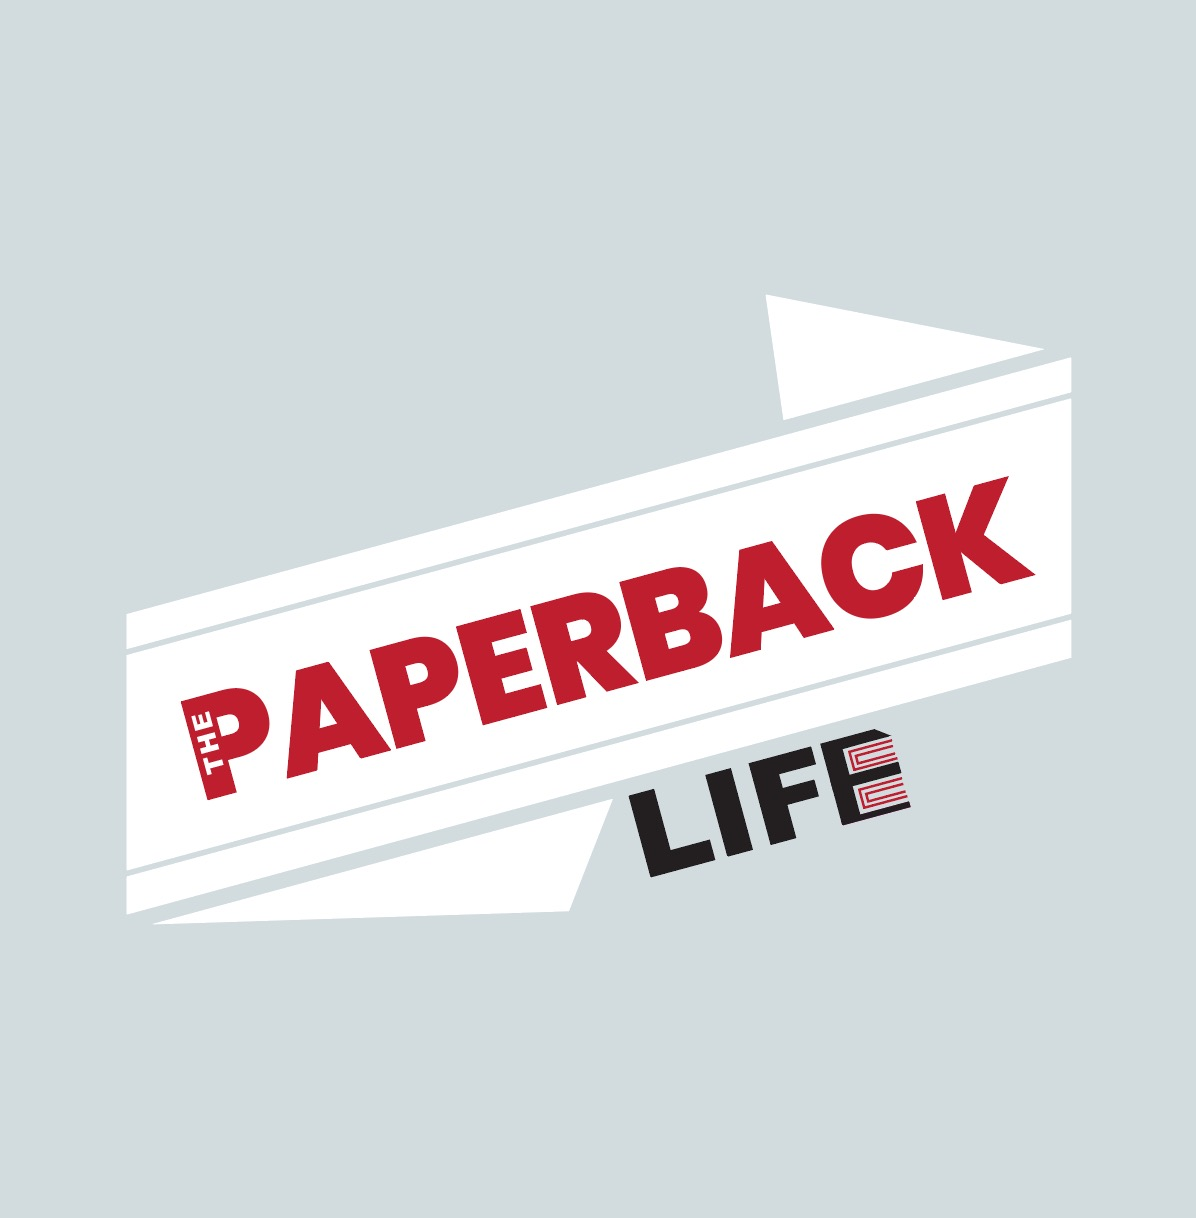 The Paperback Life LLC image